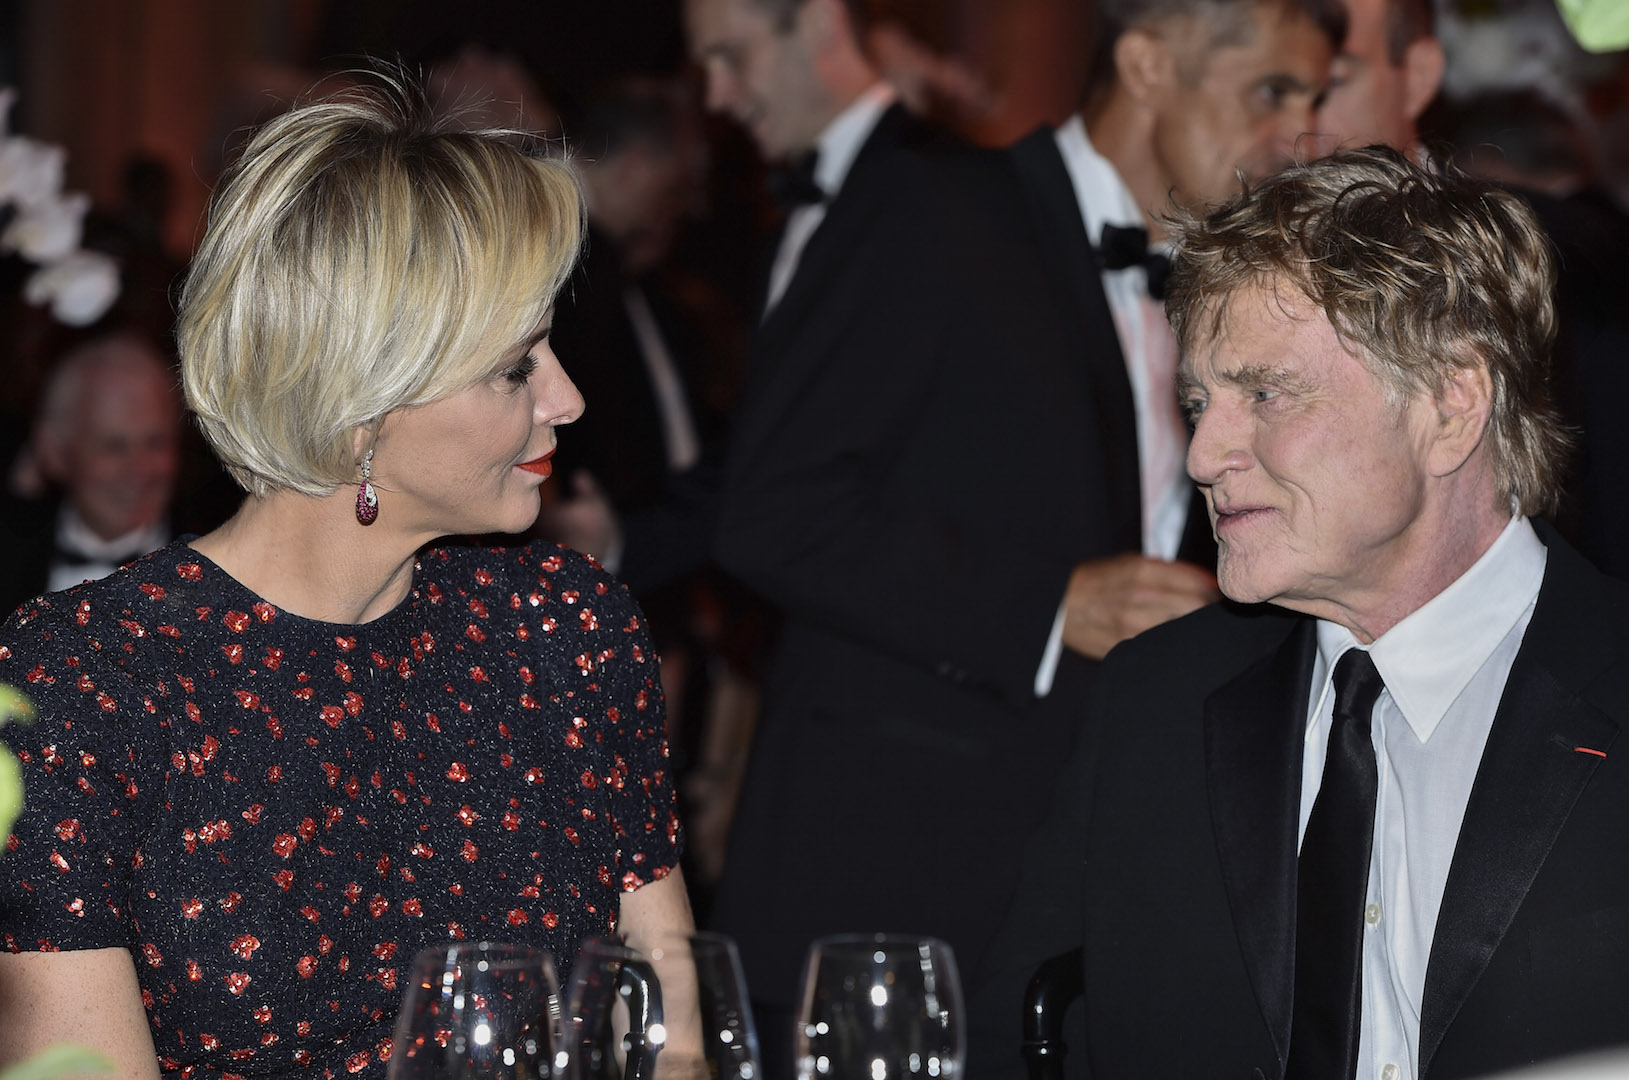 MONTE-CARLO, MONACO - SEPTEMBER 05:  (L-R) Her Serene Highness Princess Charlene of Monaco and 2015 Princess Grace Awards Gala Honoree Robert Redford attend the 2015 Princess Grace Awards Gala With Presenting Sponsor Christian Dior Couture at Monaco Palace on September 5, 2015 in Monte-Carlo, Monaco.  (Photo by Pascal Le Segretain/Getty Images for Princess Grace Foundation-USA)